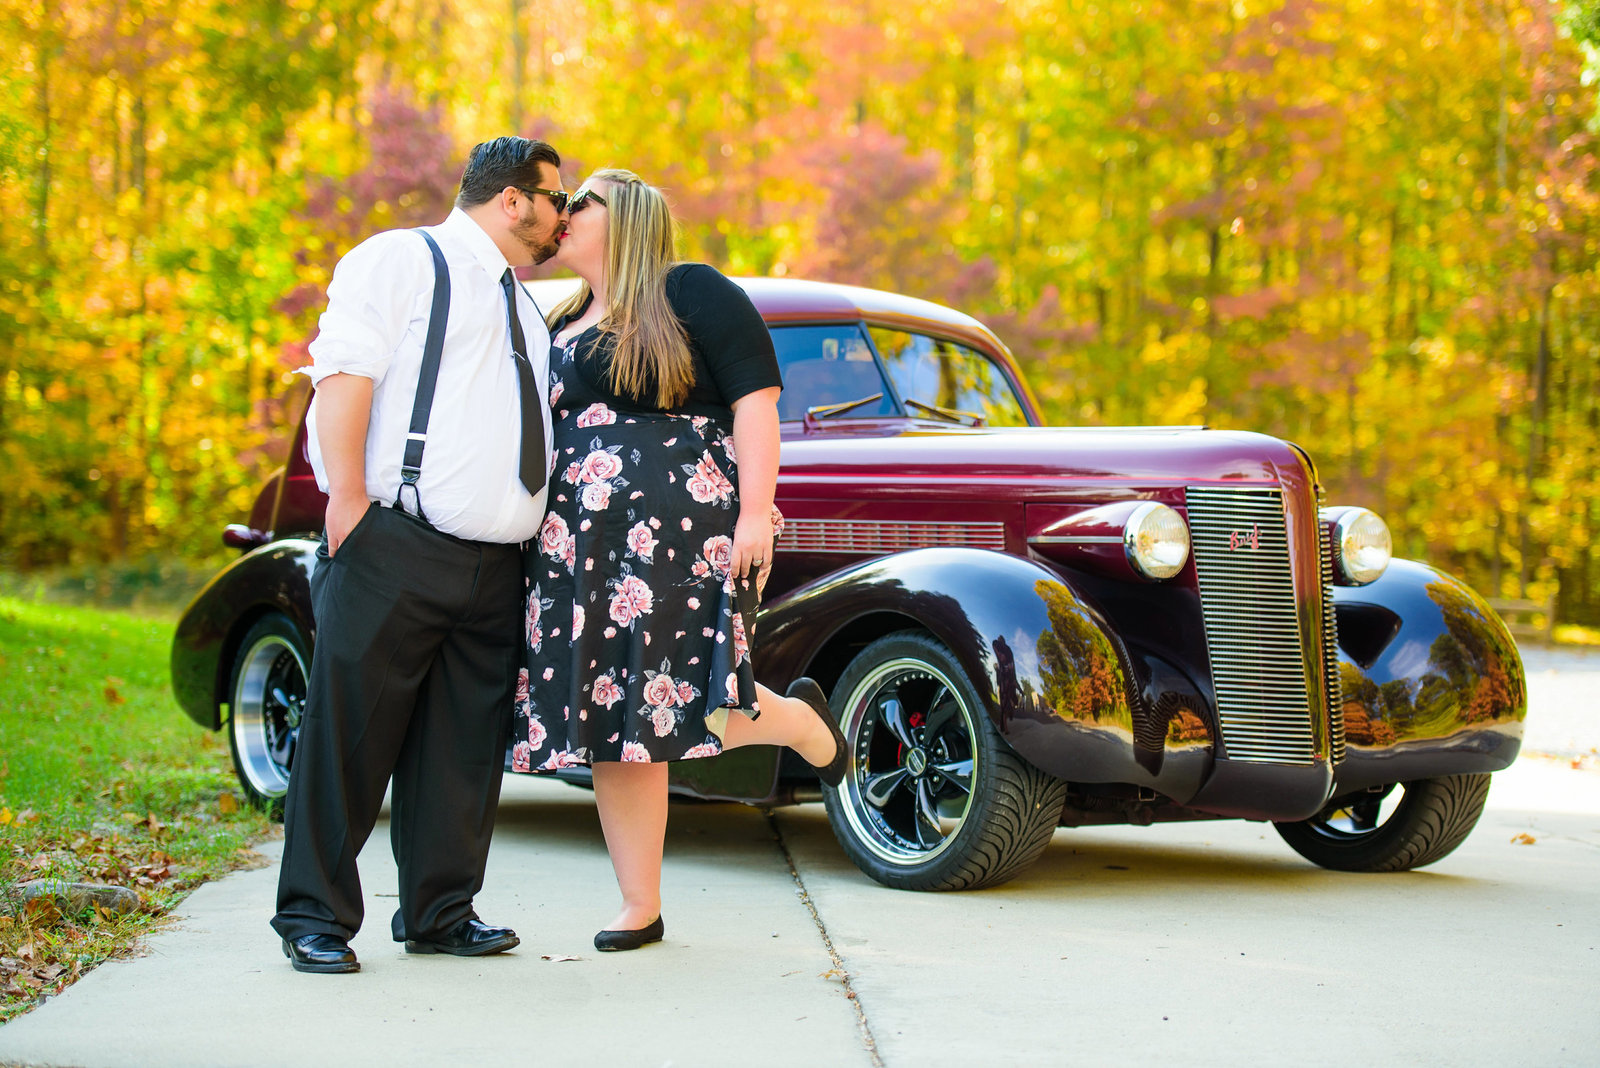 Retro_Pinup_Car_engagement_session_Nj022